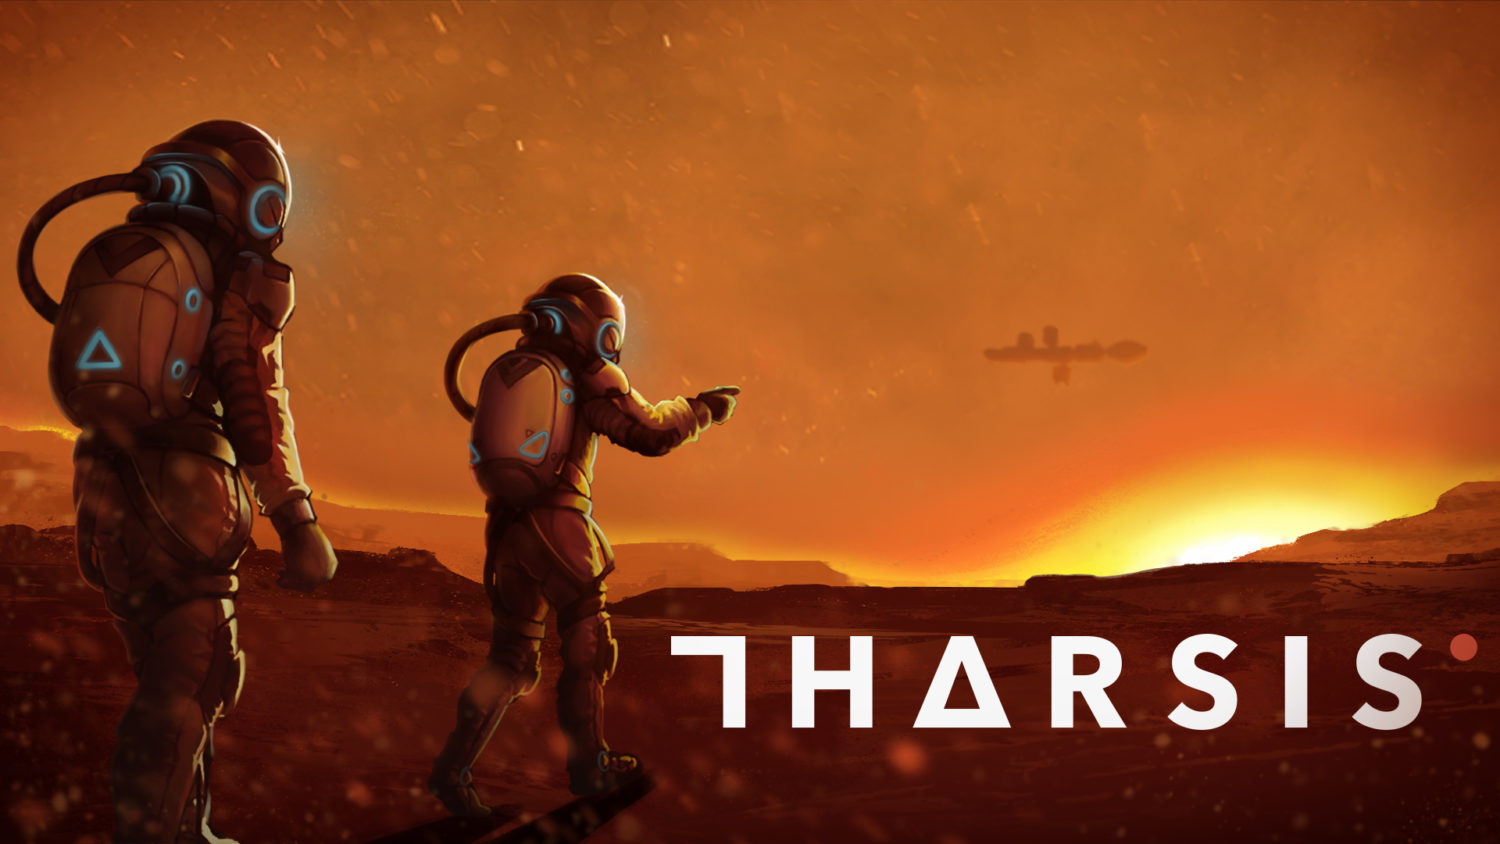 Tharsis - Nintendo Switch eShop